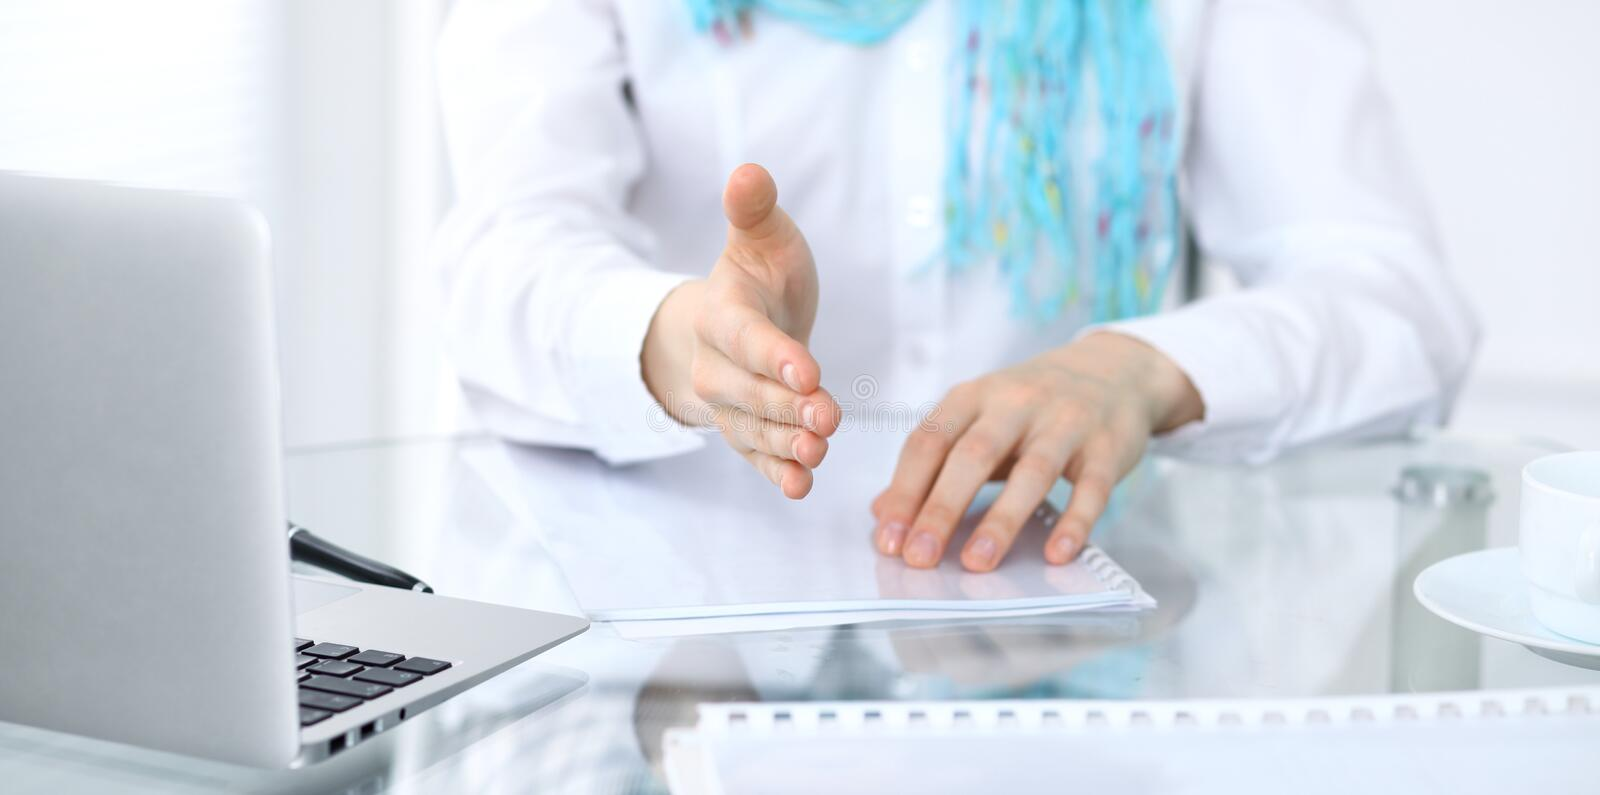 Business woman with hand out for handshake. Close-up of an open hand stock images